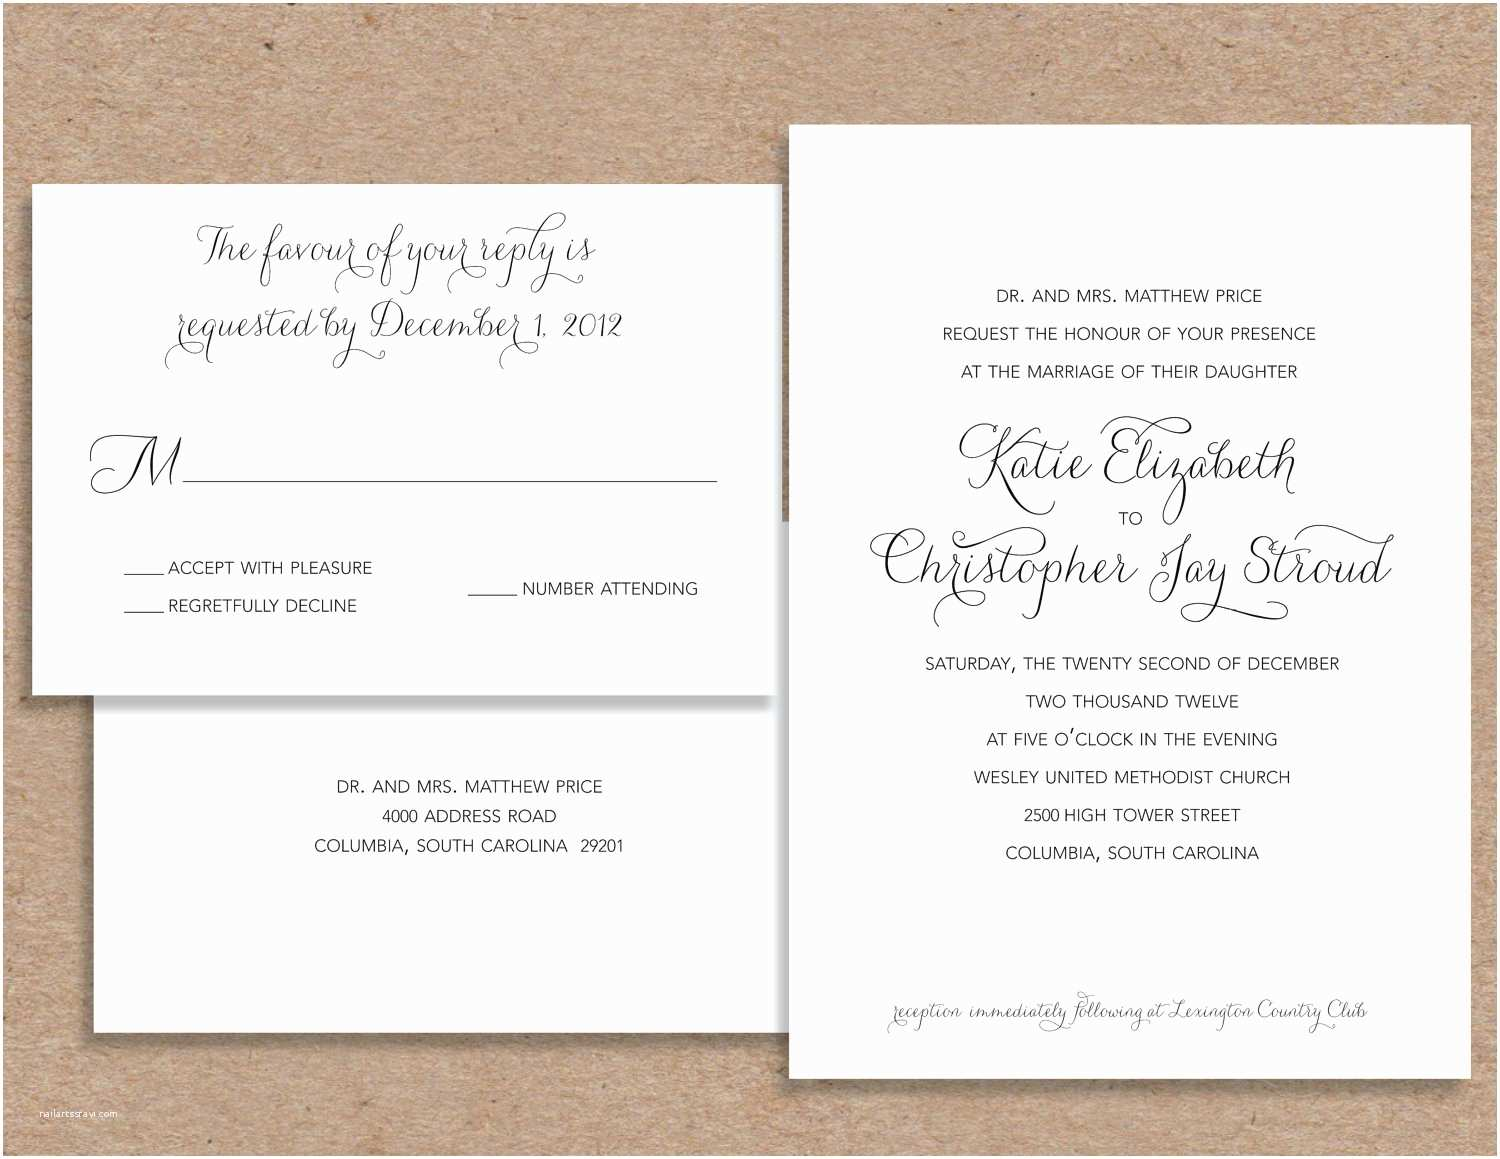 Wedding Invitation Dress Code Wording formal Wedding Invitation Wording